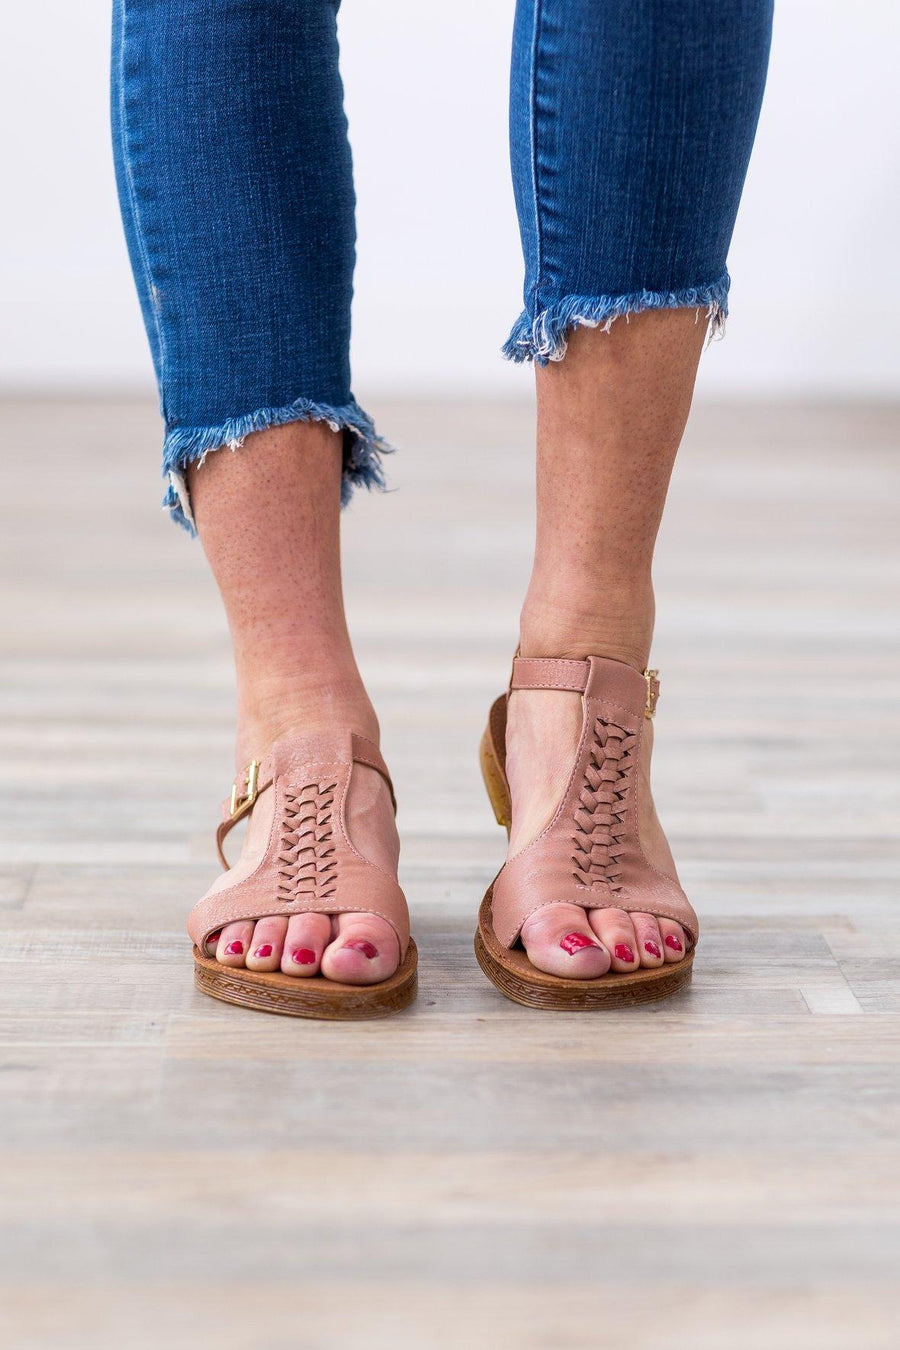 da3fa3cd23876a Report Back To Me Braided Sandal in Dusty Pink